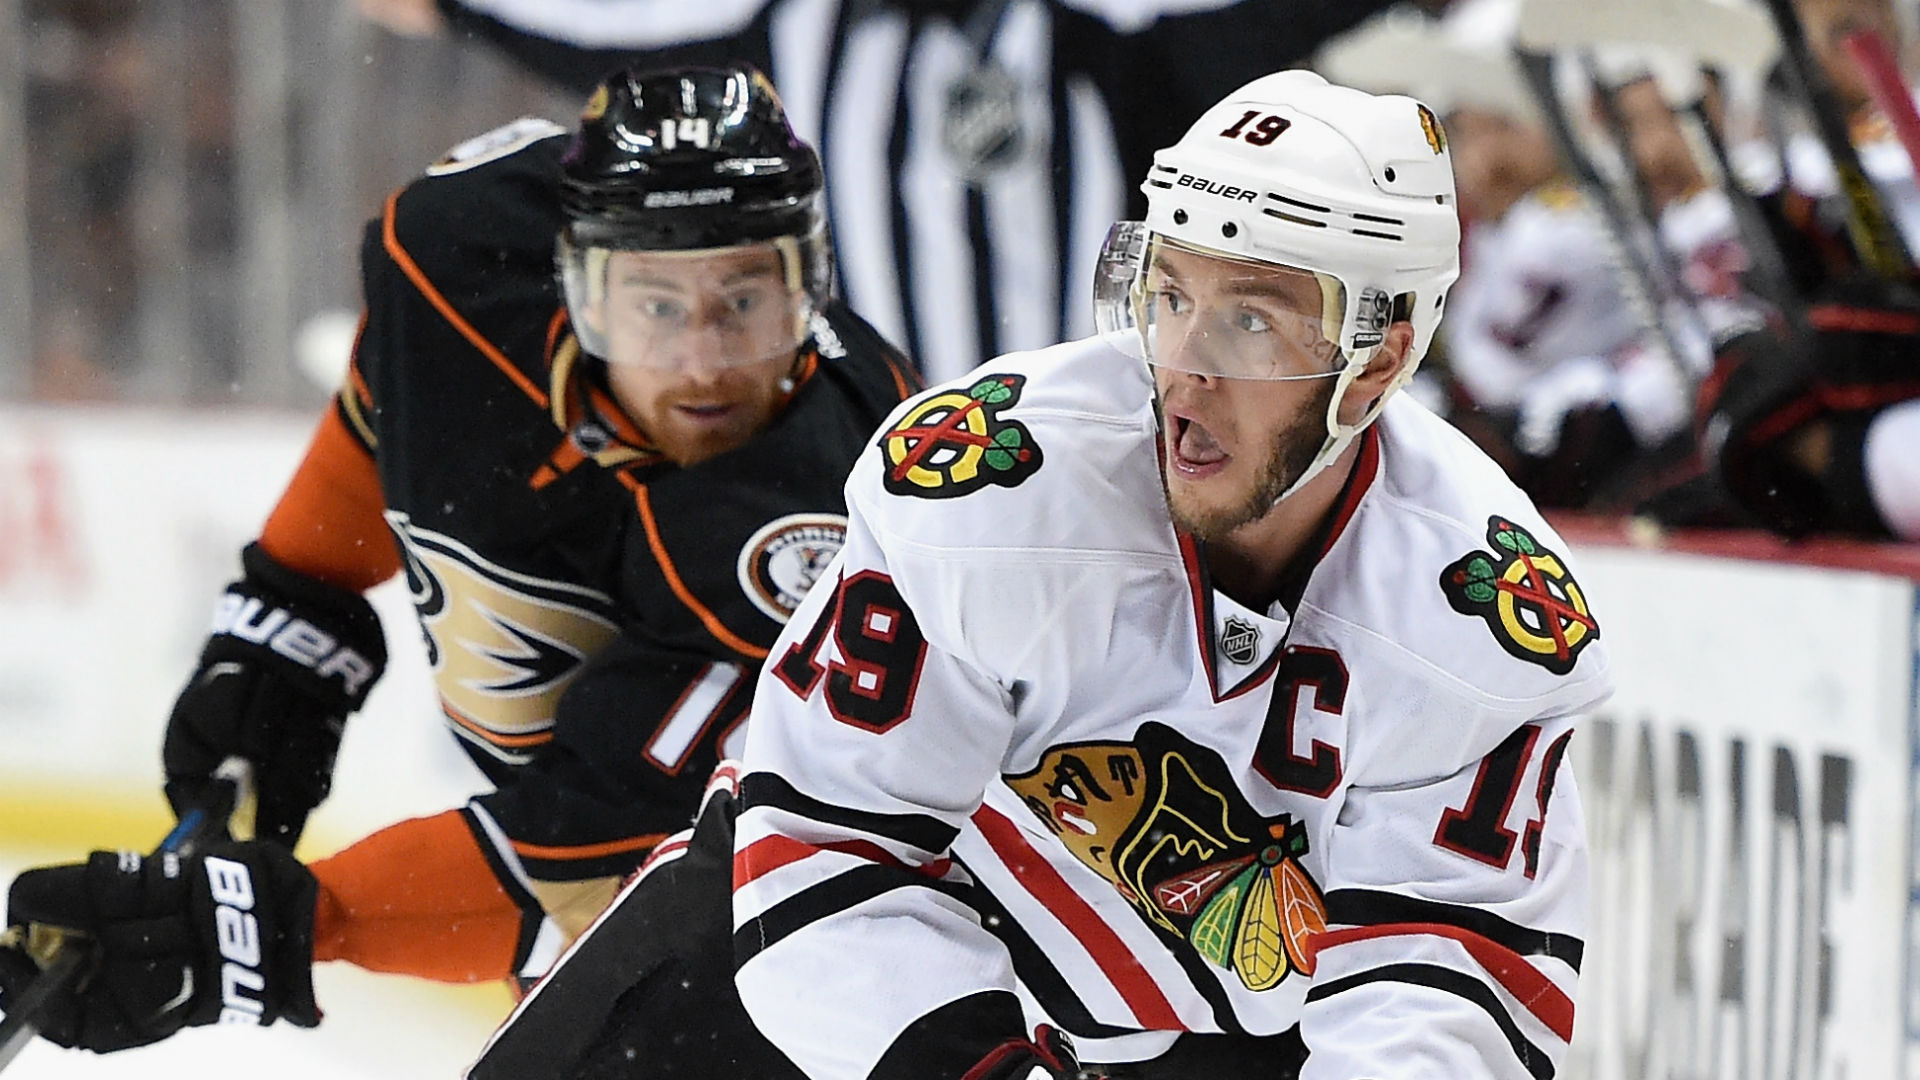 Western Conference finals Game 7 preview: Recent history favors Blackhawks, not Ducks